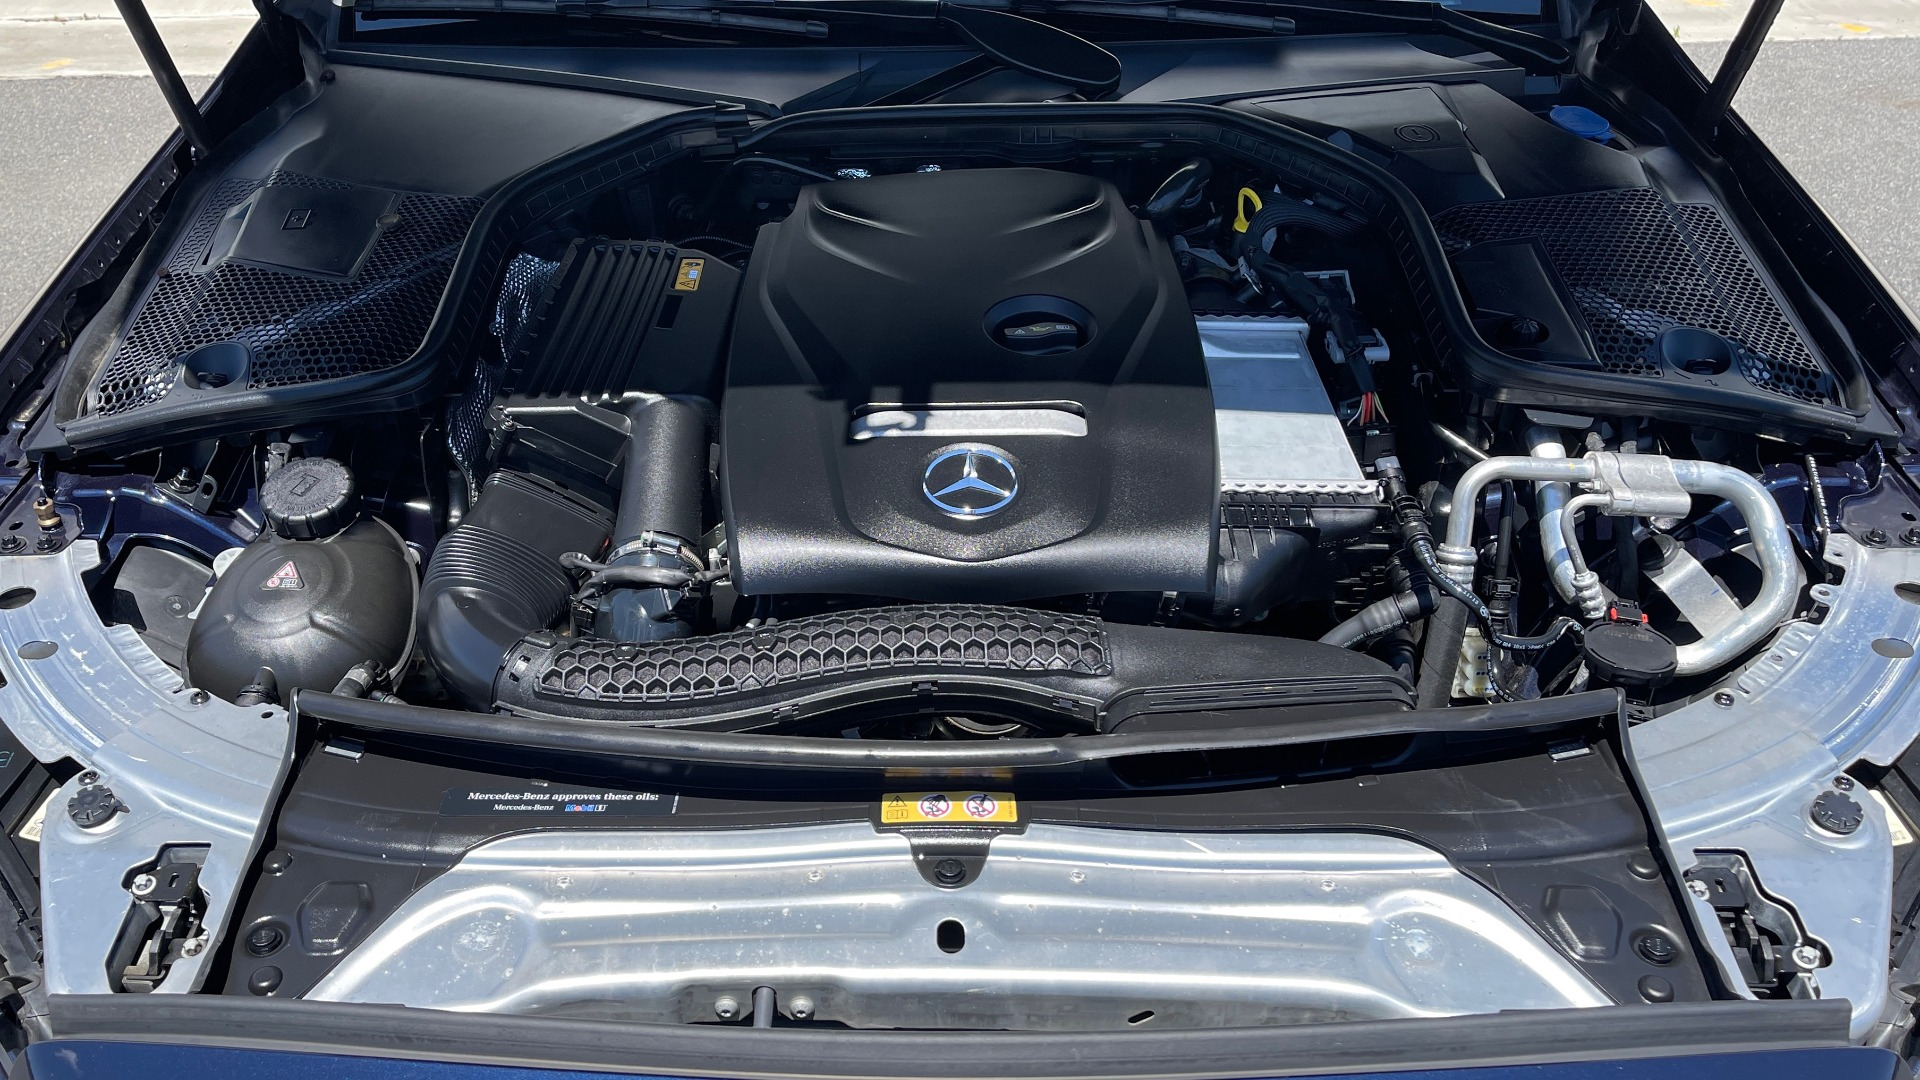 Used 2018 Mercedes-Benz C-CLASS C 300 PREMIUM / KEYLESS-GO / PANO-ROOF / BURMESTER / REARVIEW for sale $29,495 at Formula Imports in Charlotte NC 28227 7